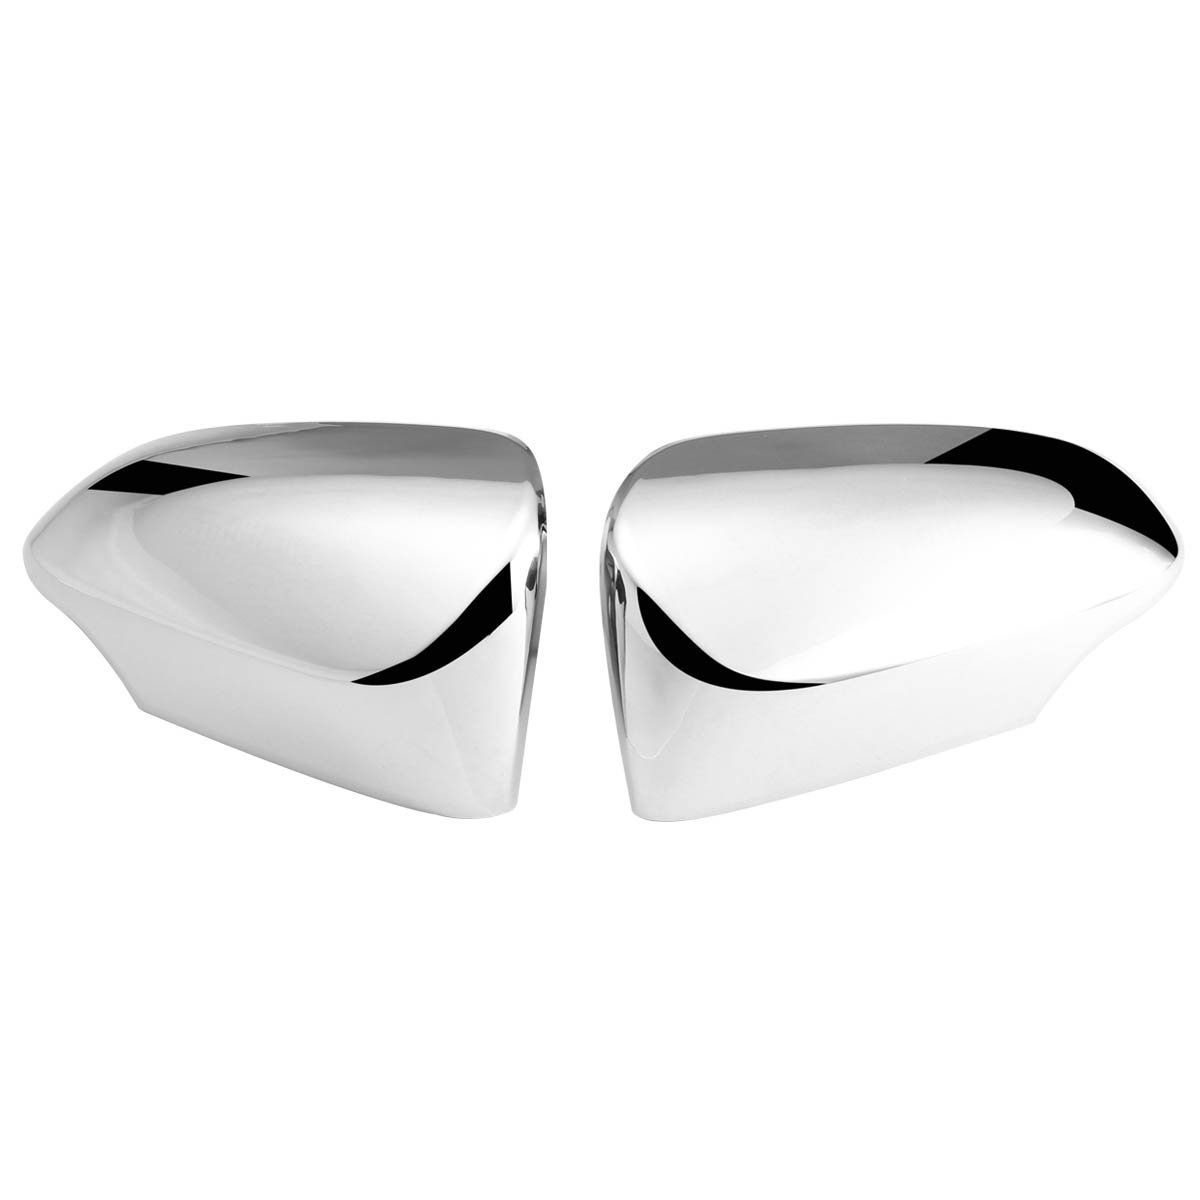 SIDE MIRROR COVERS FOR HYUNDAI XCENT (SET OF 2PCS)